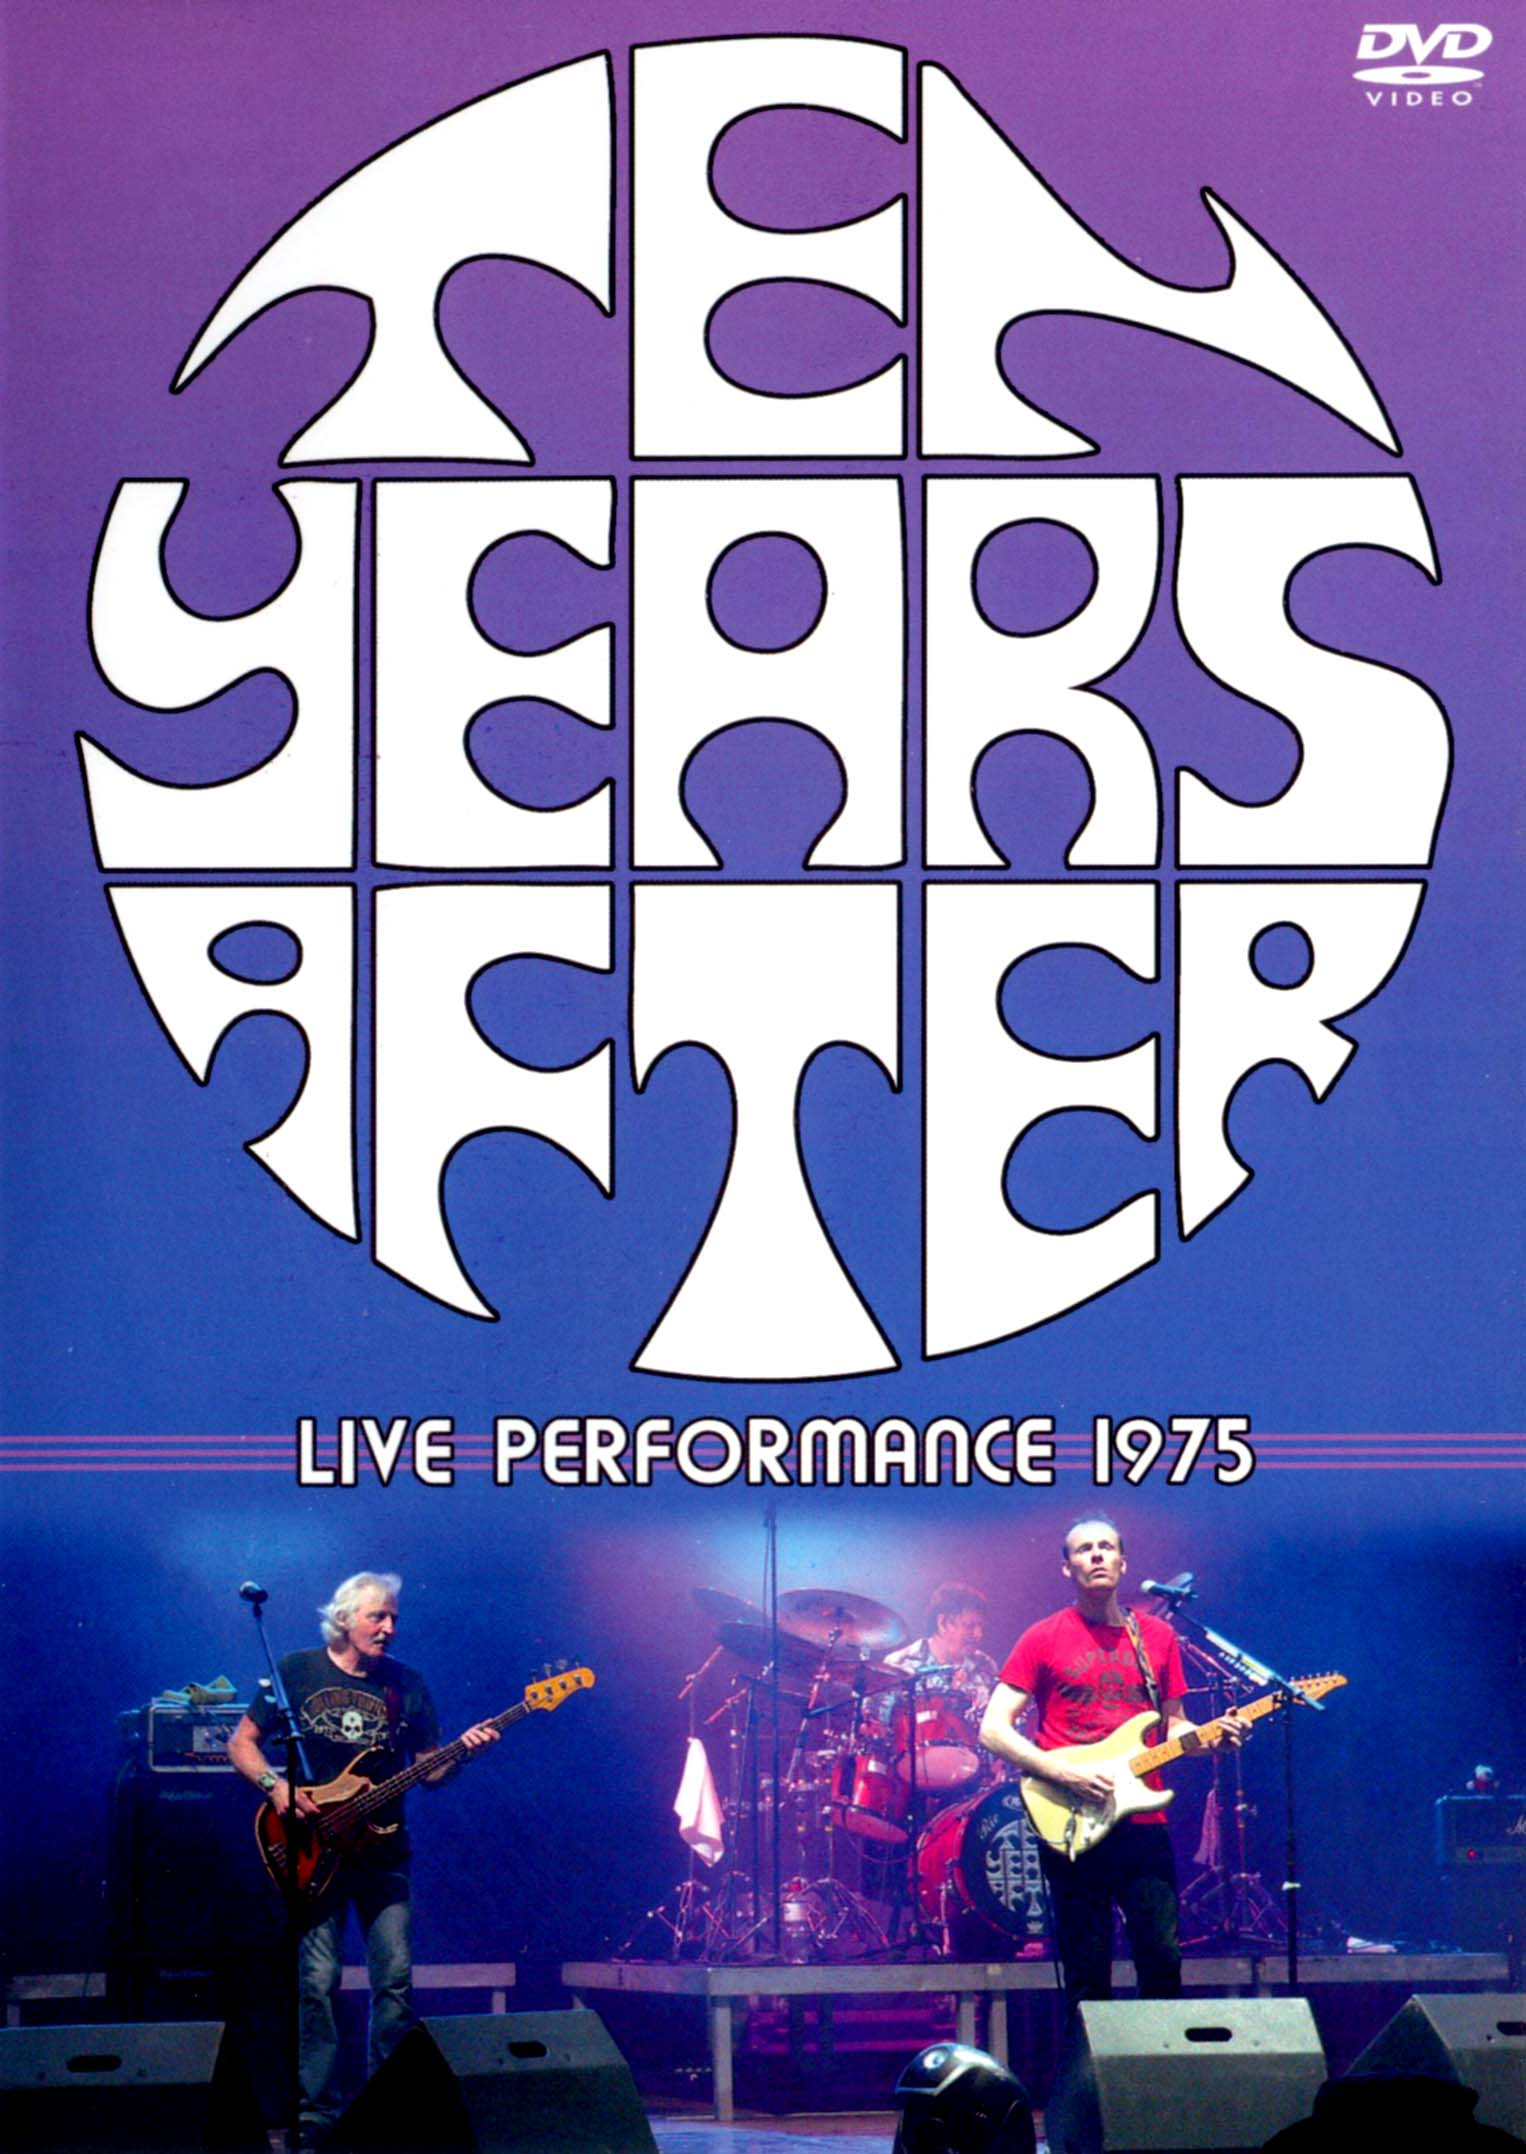 Ten Years After: Live Performance 1975